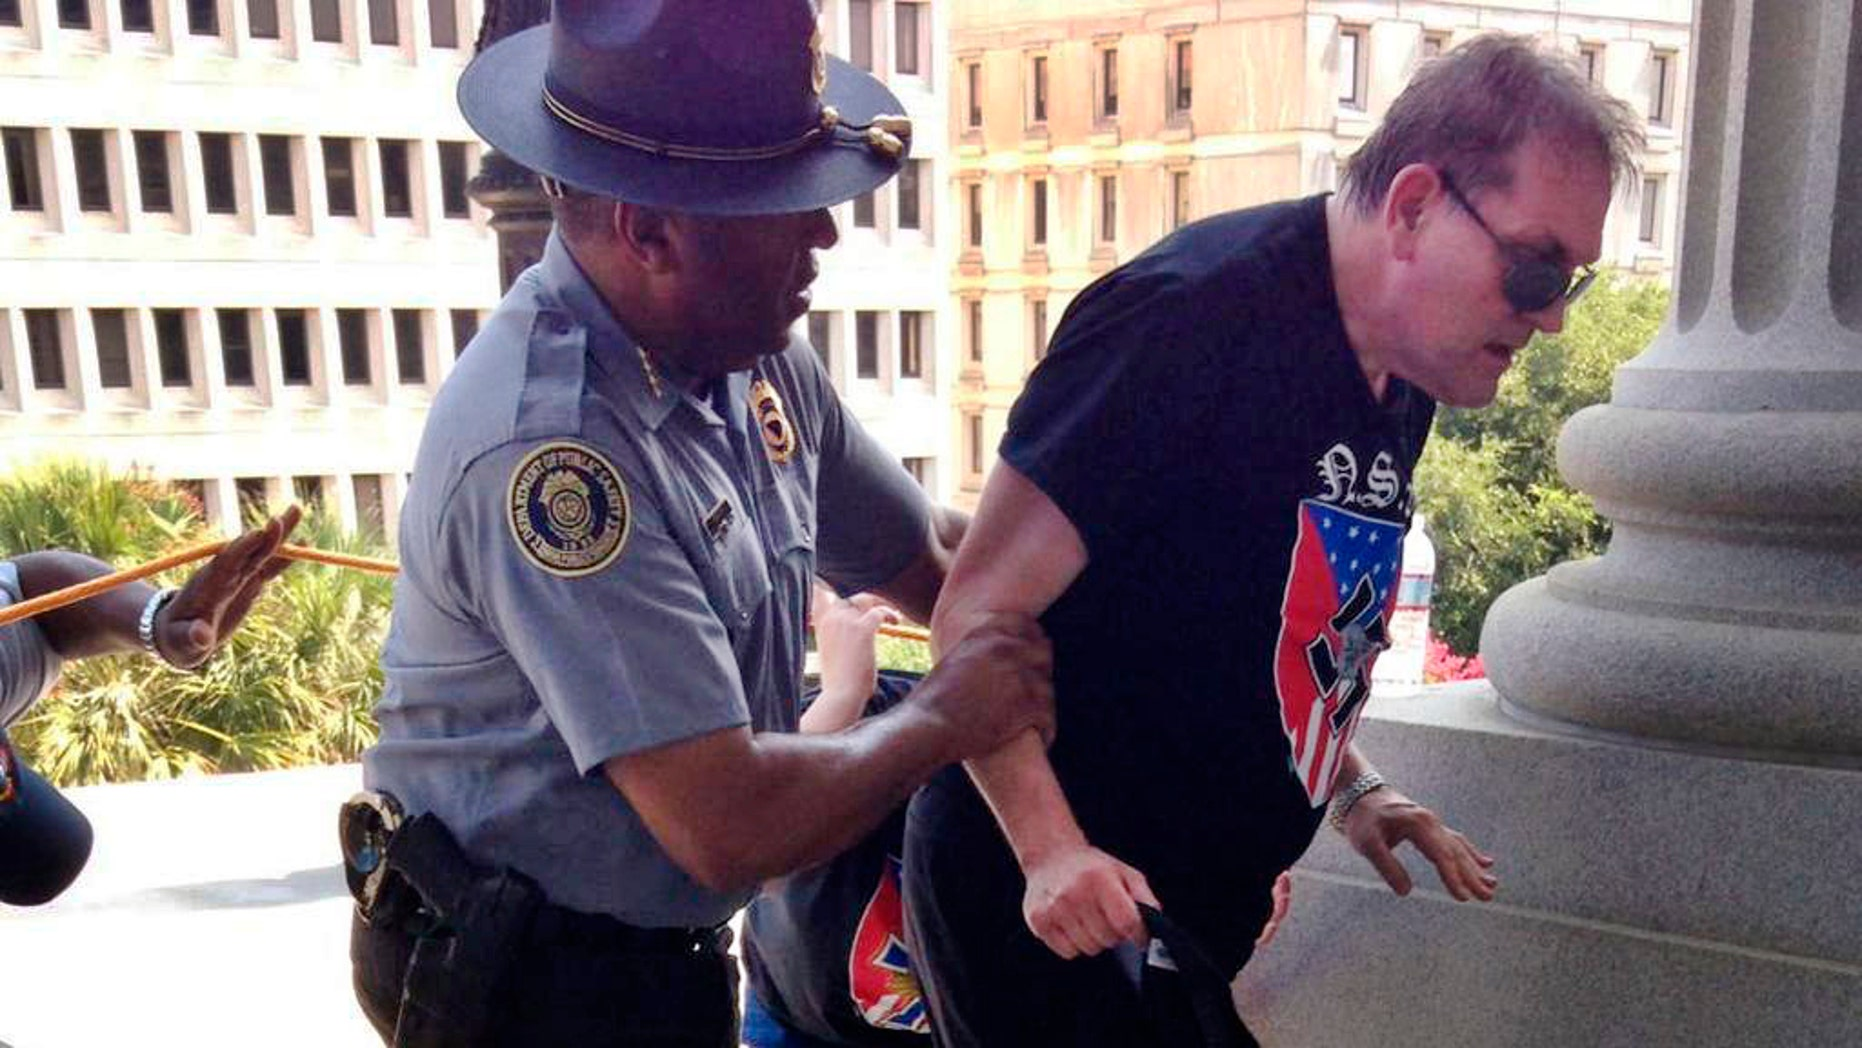 In this photo provided by Rob Godfrey, police officer Leroy Smith, left, helps a man wearing National Socialist Movement attire up the stairs during a rally Saturday, July 18, 2015, in Columbia, S.C. Members of the group were protesting Saturday the removal of the Confederate flag from the Statehouse grounds earlier this month. (Rob Godfrey via AP)